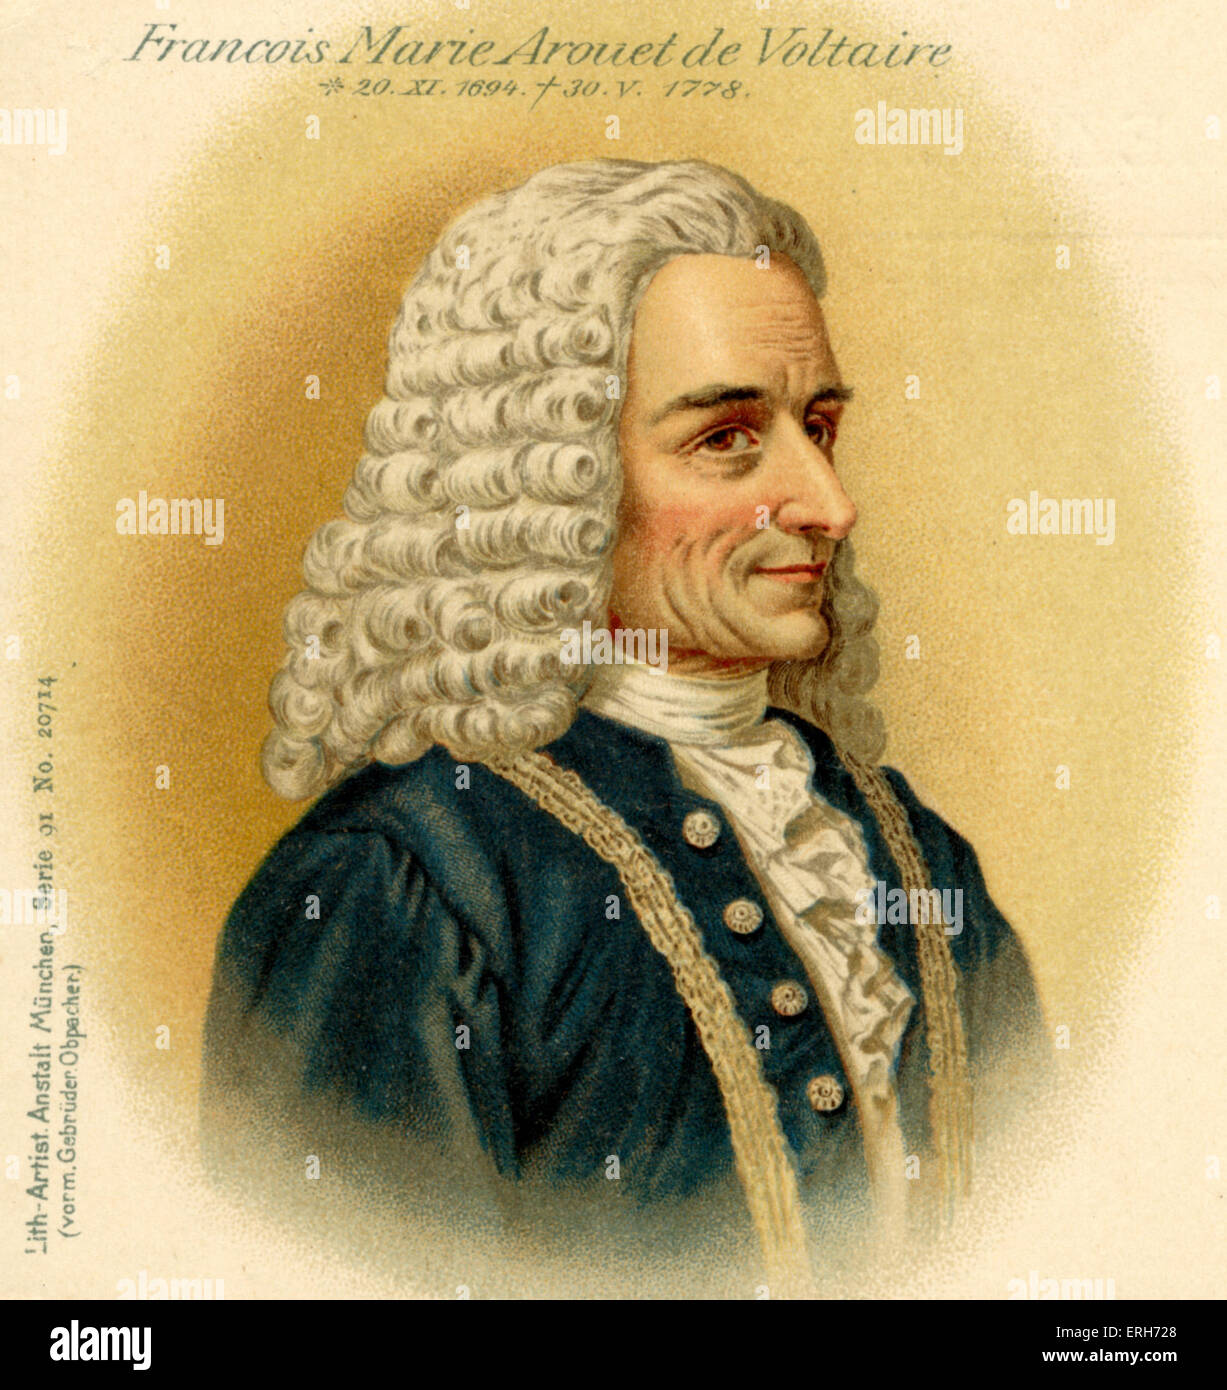 an analysis of the topic of francois marie arouet de voltaire Francois marie arouet (voltaire) was born on november 21, 1694 he was not expected to live through childhood in 1726, voltaire insulted a powerful young nobleman, chevalie de rohan, and voltaire left a big impact in society he questions and philosophies challenged great figures of the time.